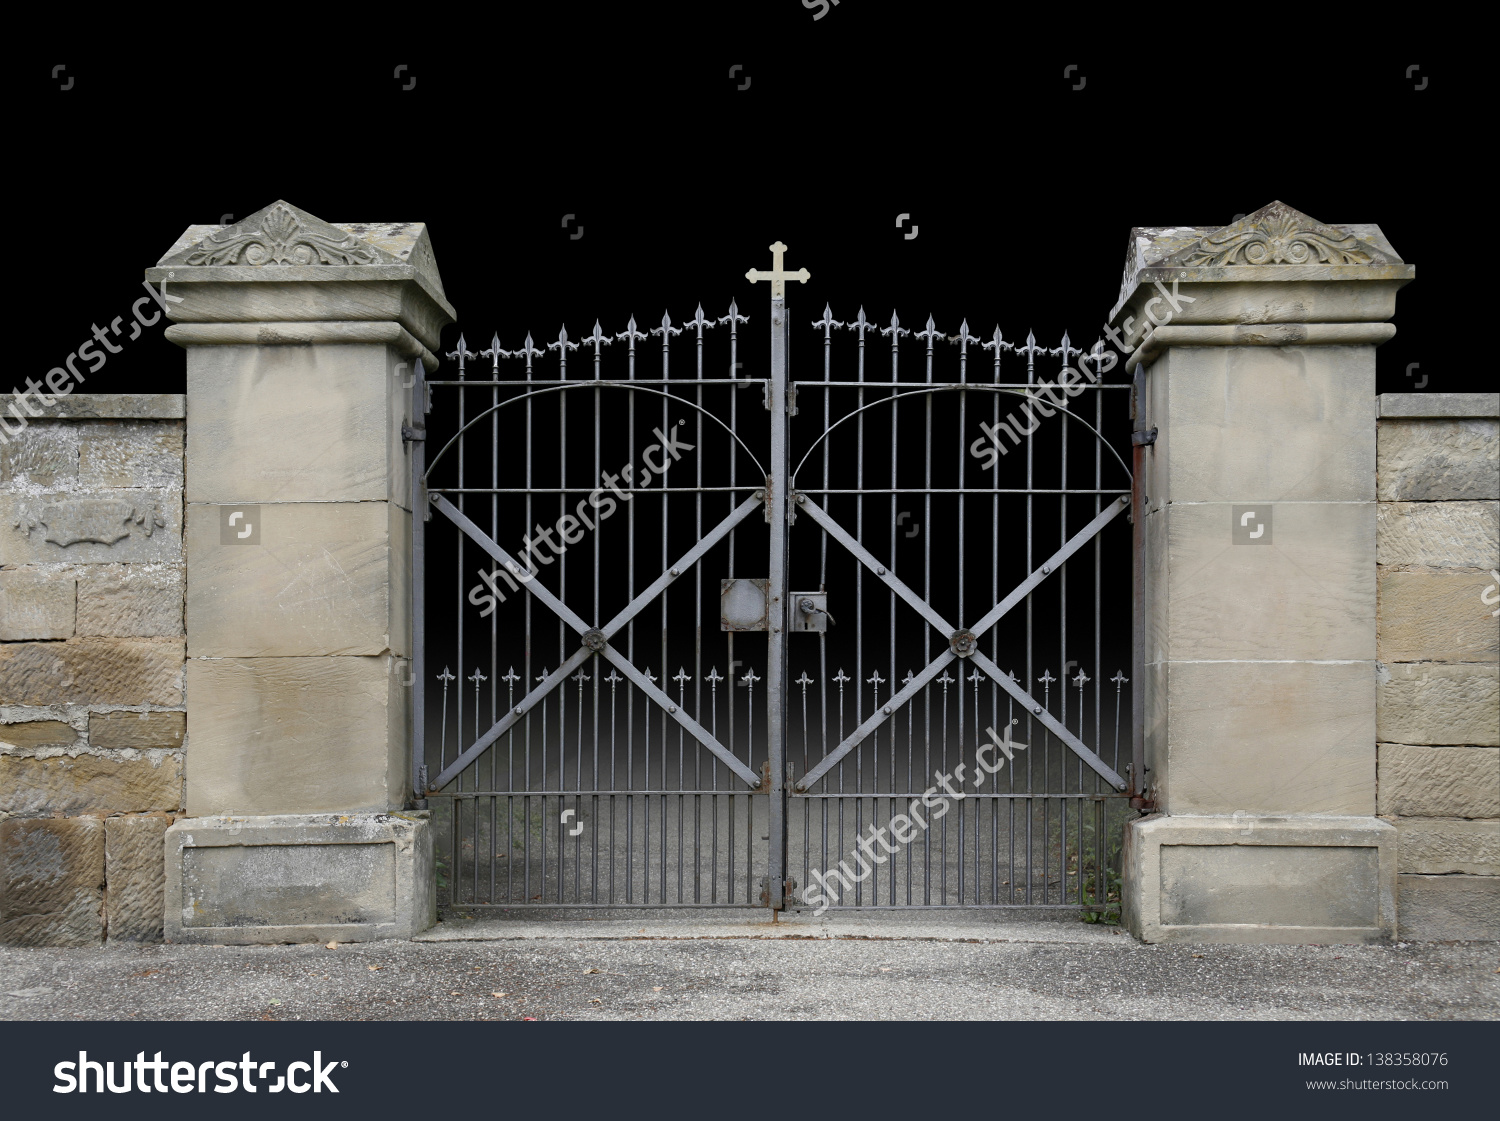 Gate clipart cemetery gates With graveyard cemetery of a